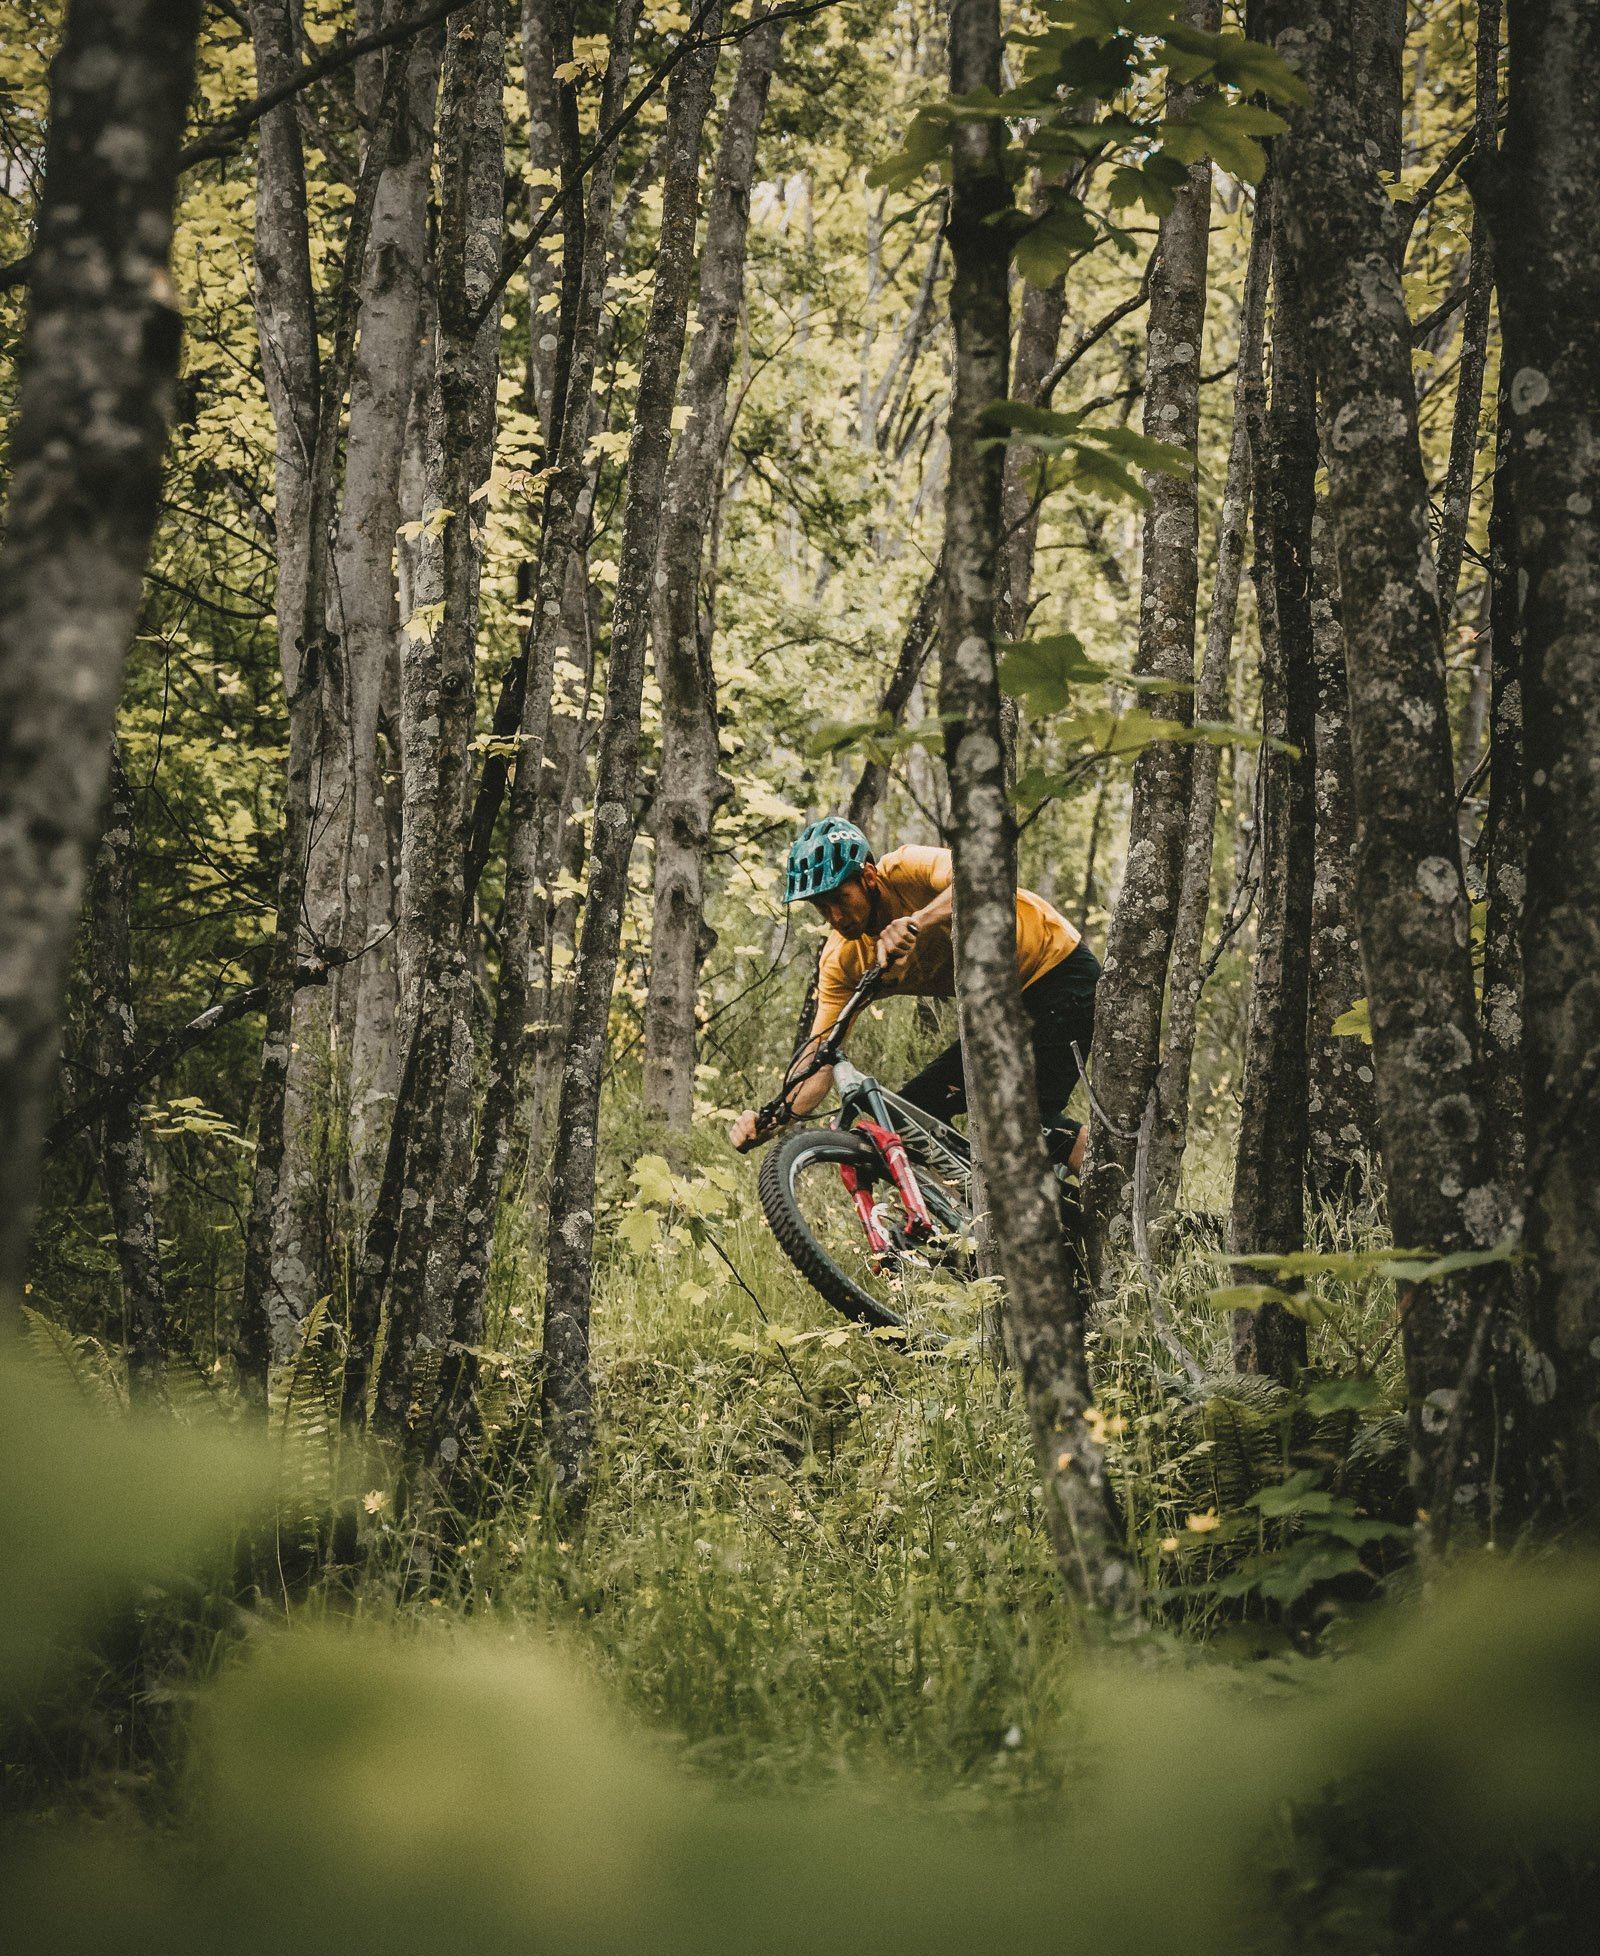 Goodyear athlete Conor Macfarlane riding in forest